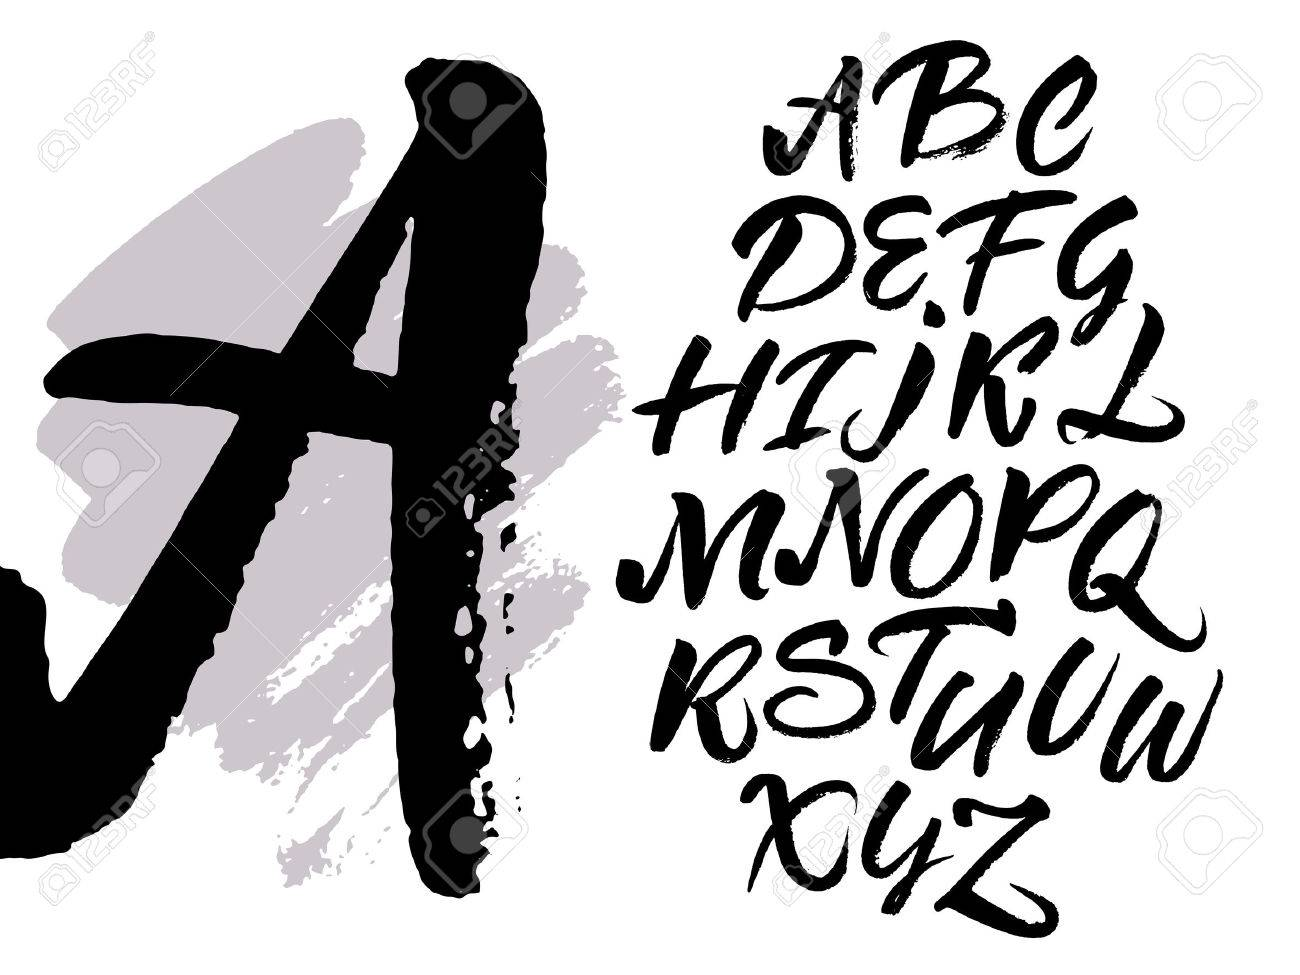 Expressive brush calligraphic handwritten script letters. Alphabet written with black ink. Stock Vector -